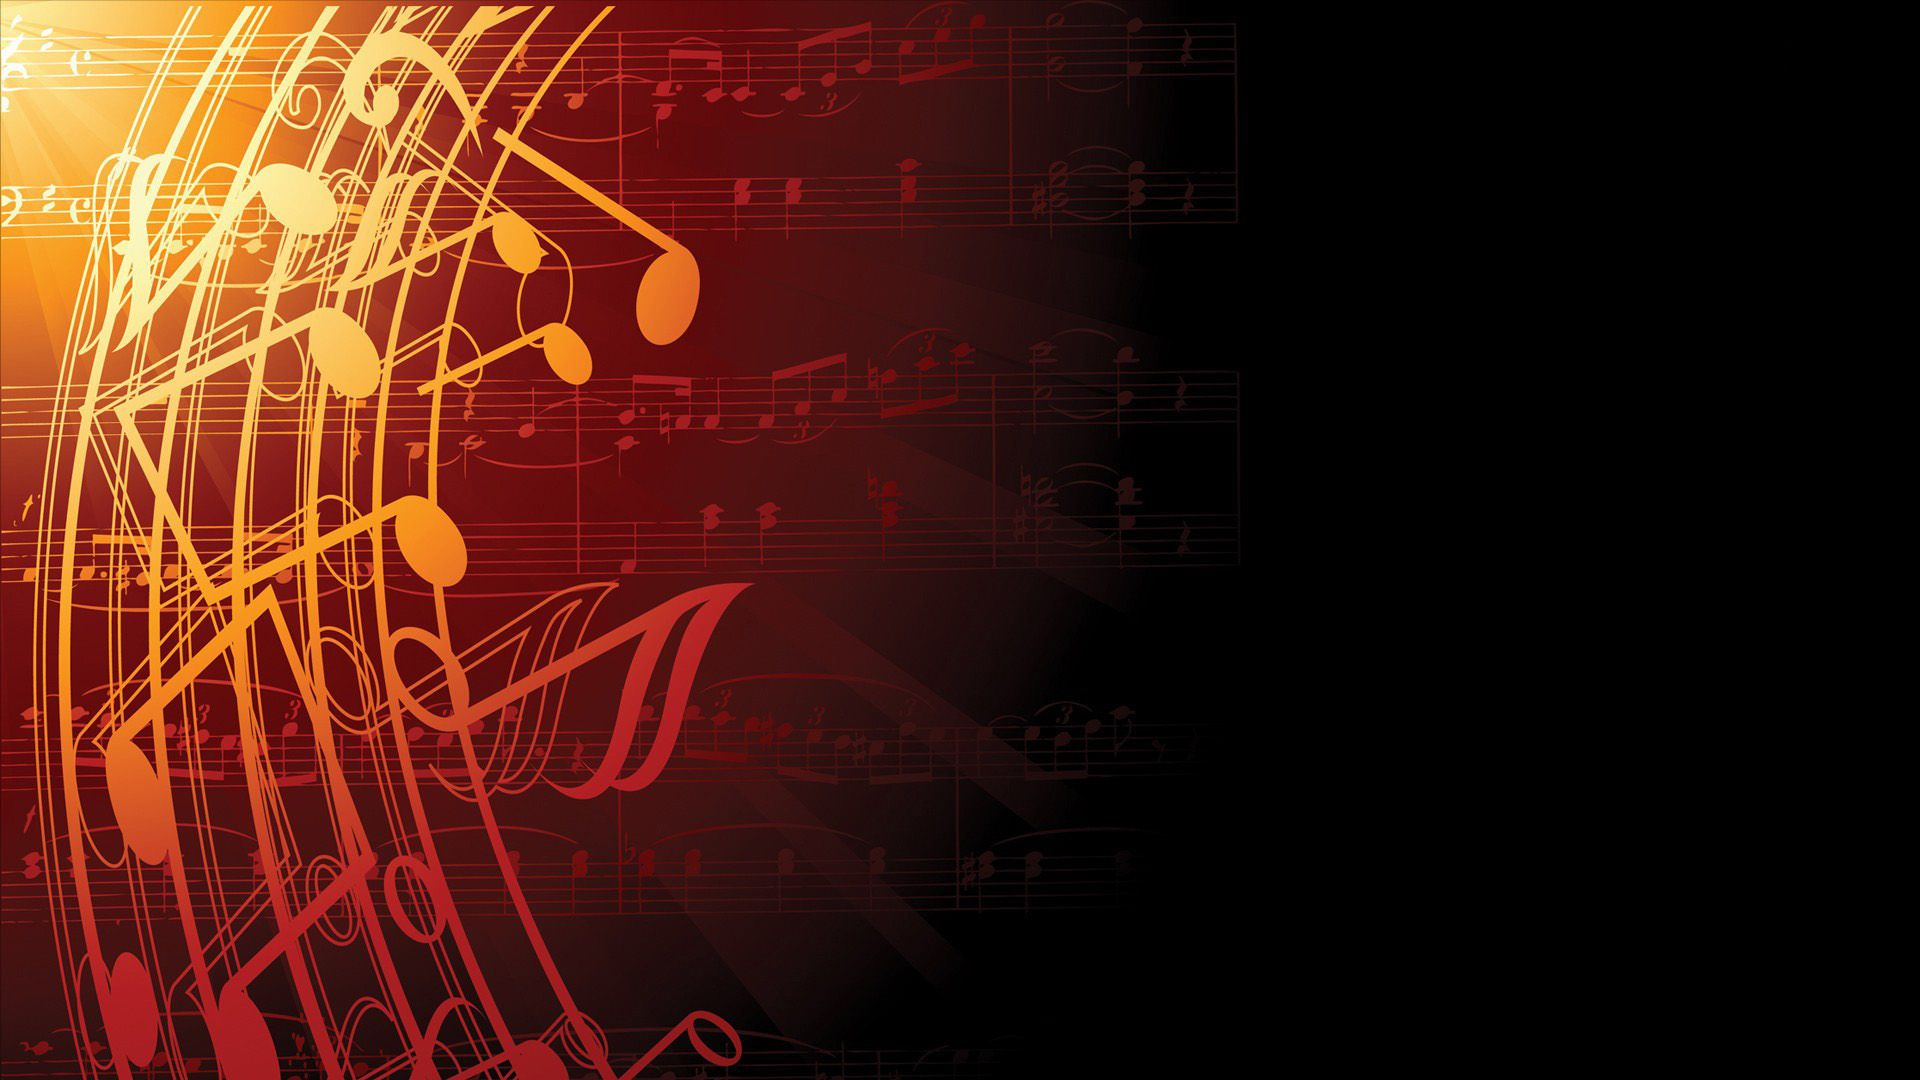 Music Backgrounds For Desktop Music Backgrounds Music Wallpaper Music Notes